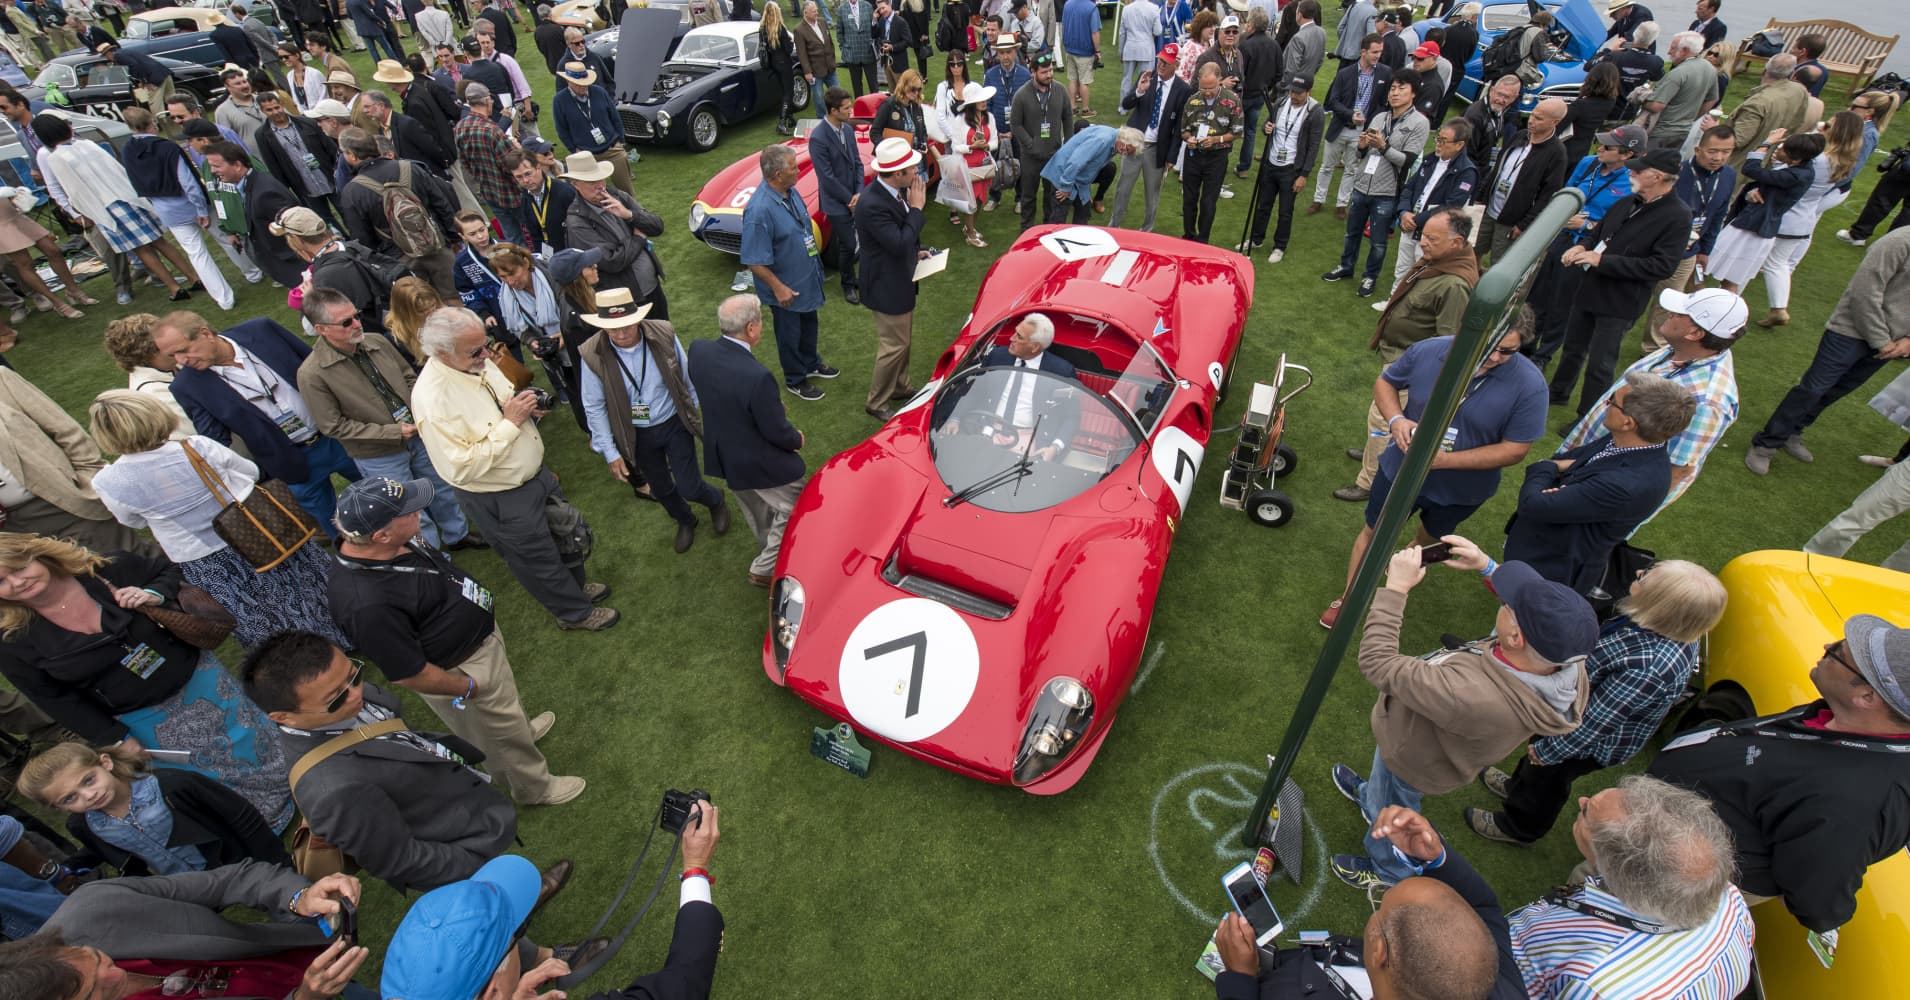 Attendees and judges gather around a 1966 Ferrari 330 P4 Drogo Spyder motor vehicle during the 2016 Pebble Beach Concours d'Elegance in Pebble Beach, California, U.S., on Sunday, Aug. 21, 2016.